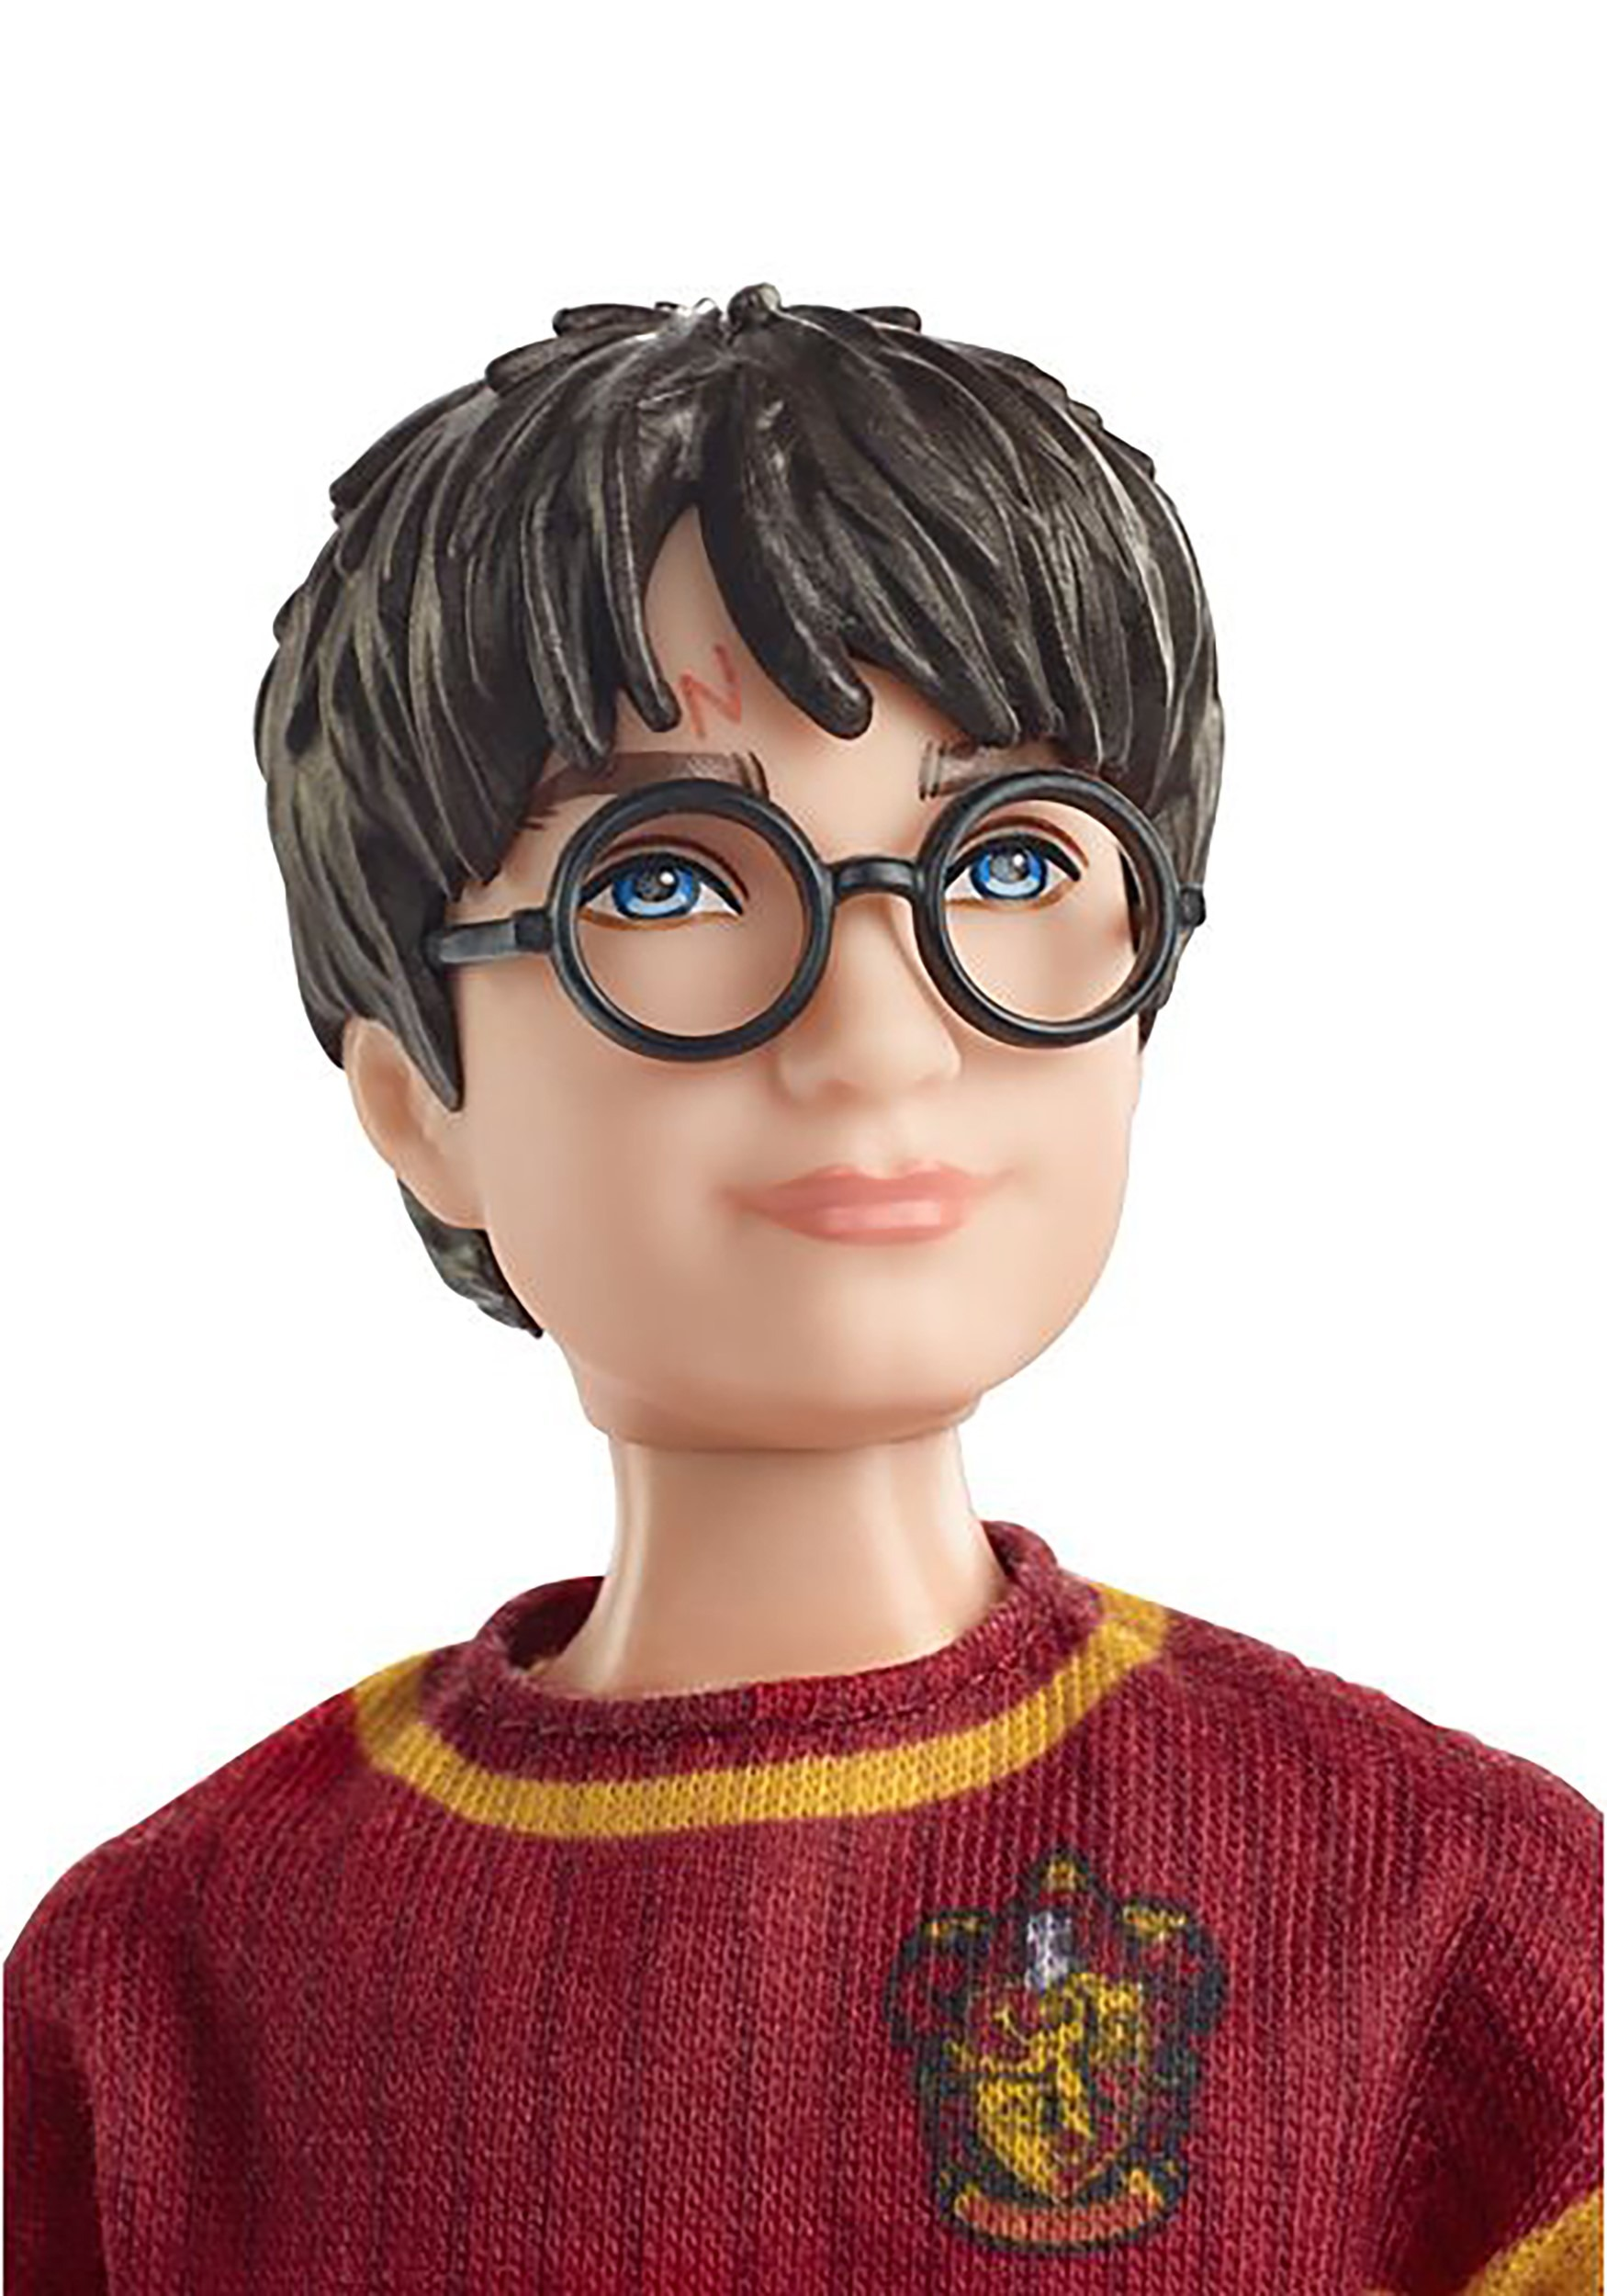 HARRY POTTER Quidditch Uniform Doll 10 with Snitch